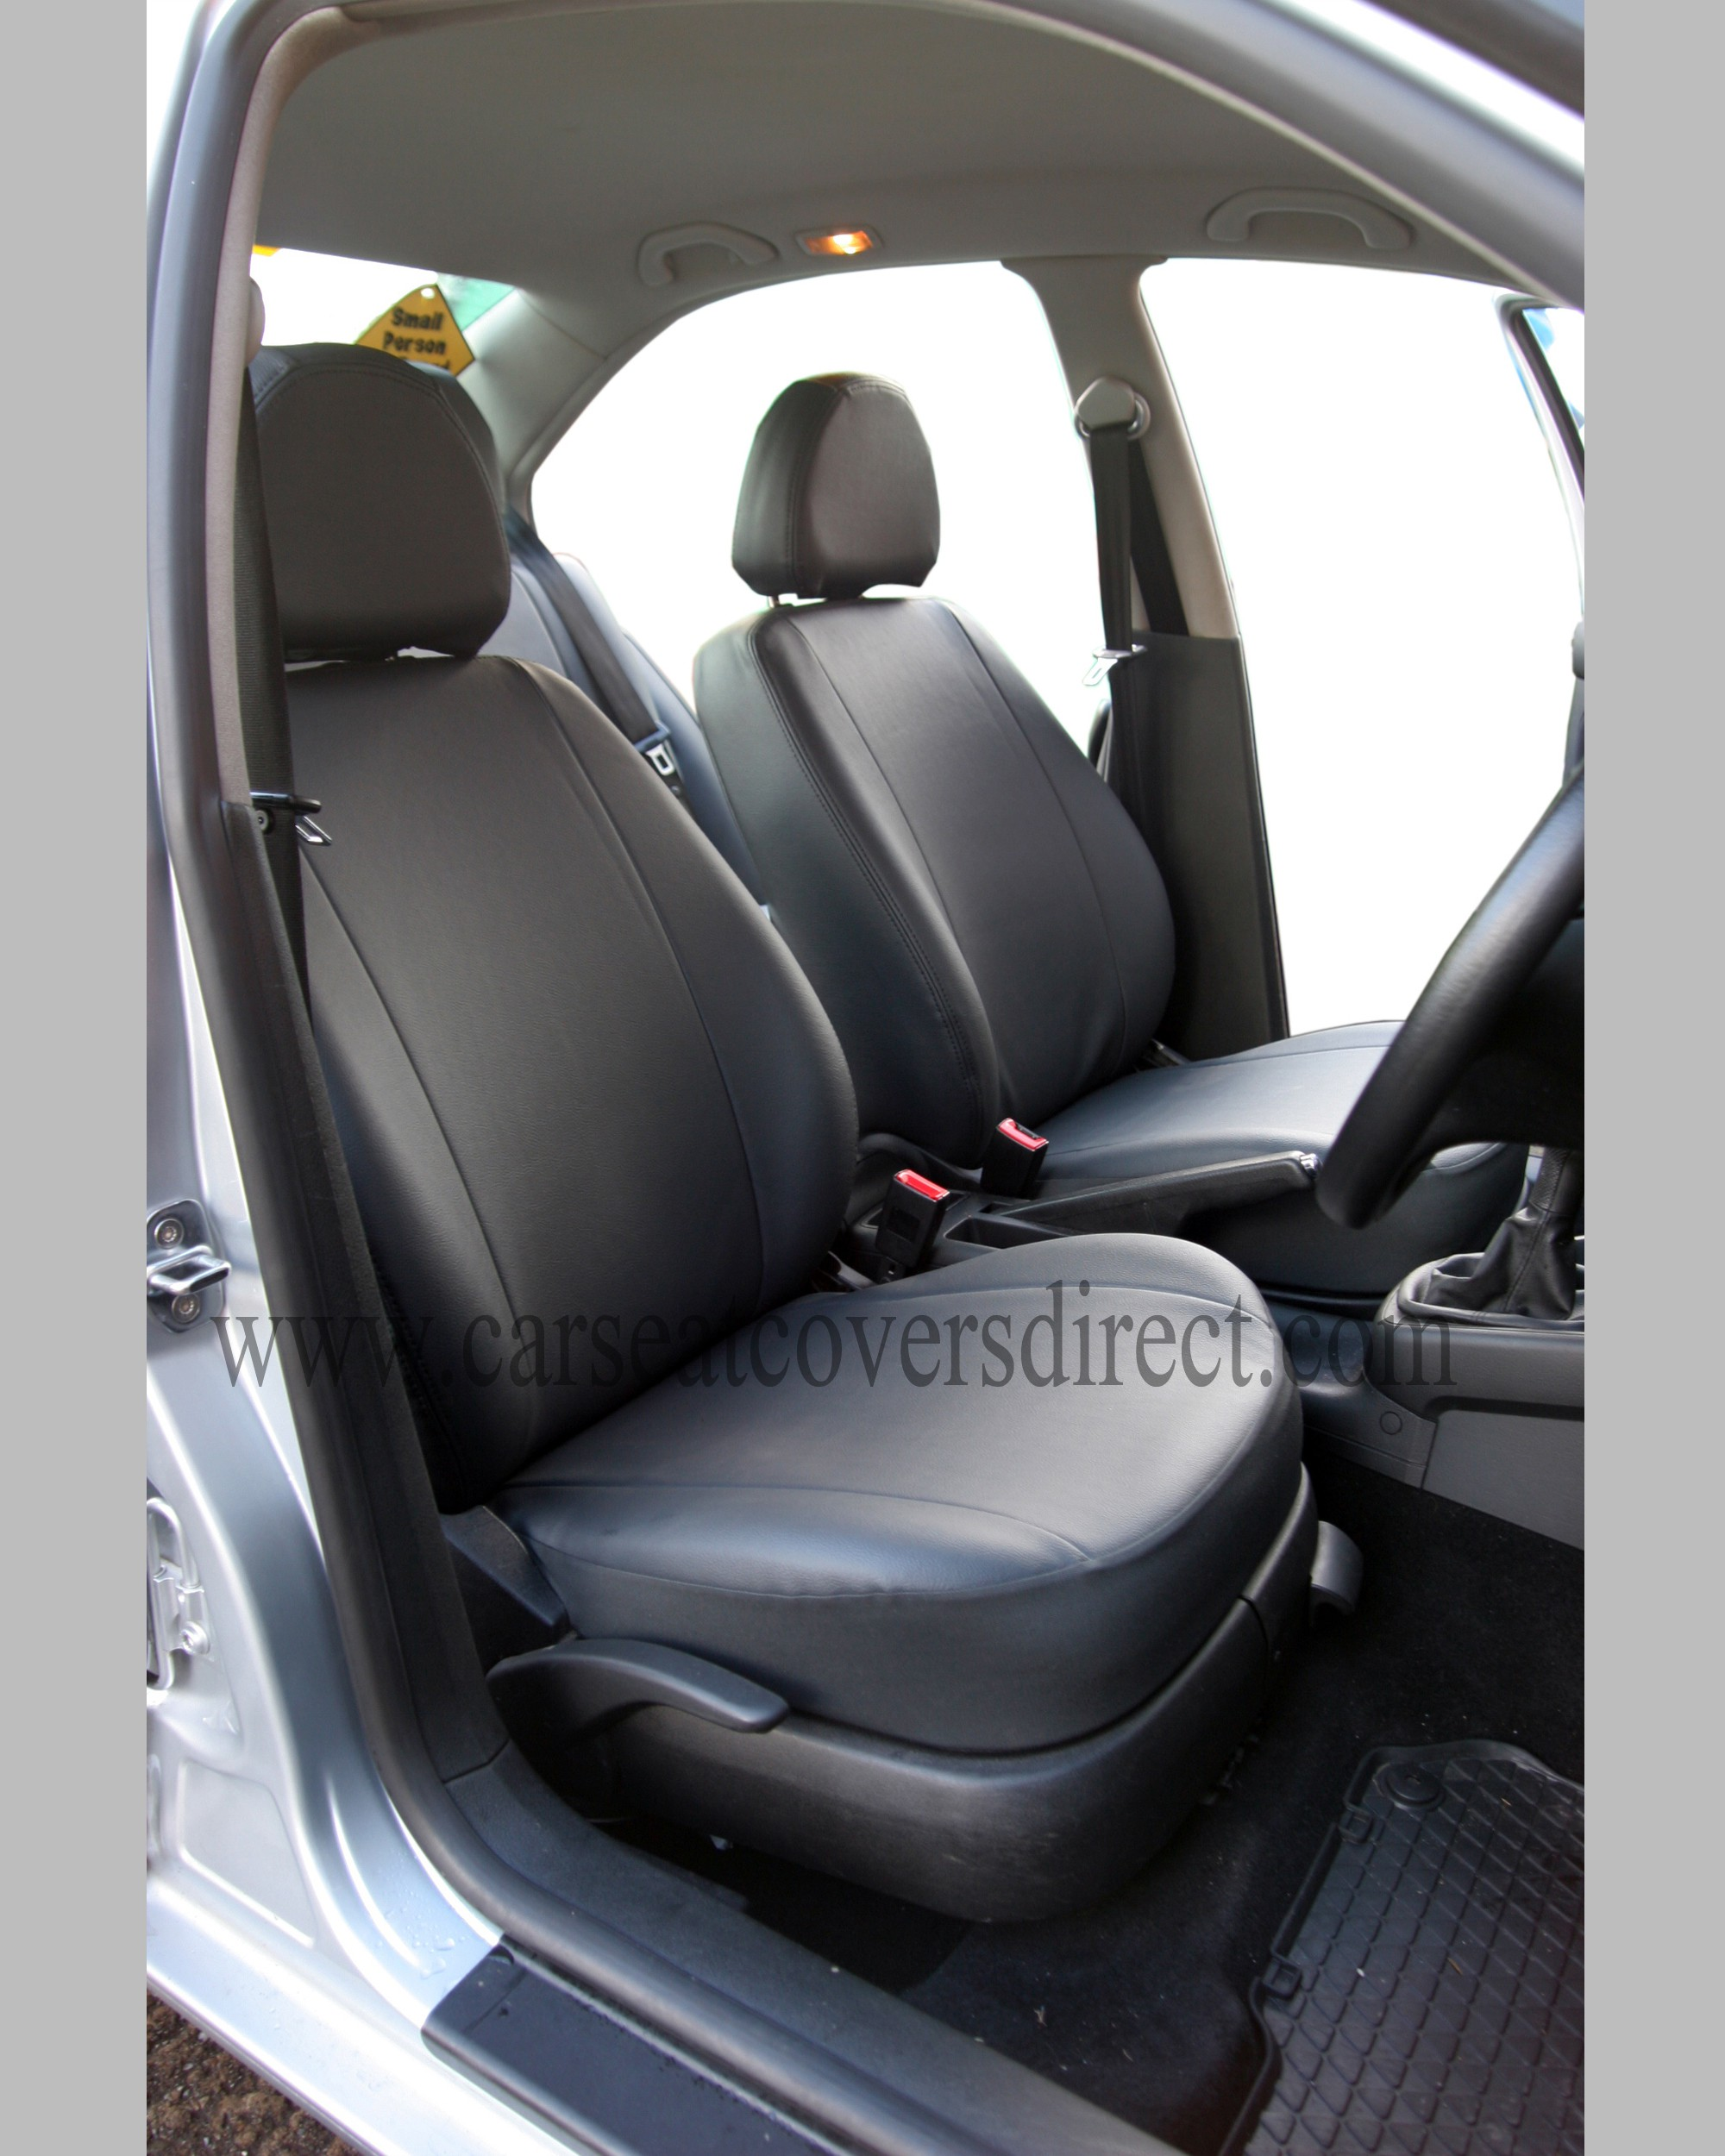 VOLKSWAGEN VW BORA Seat Covers